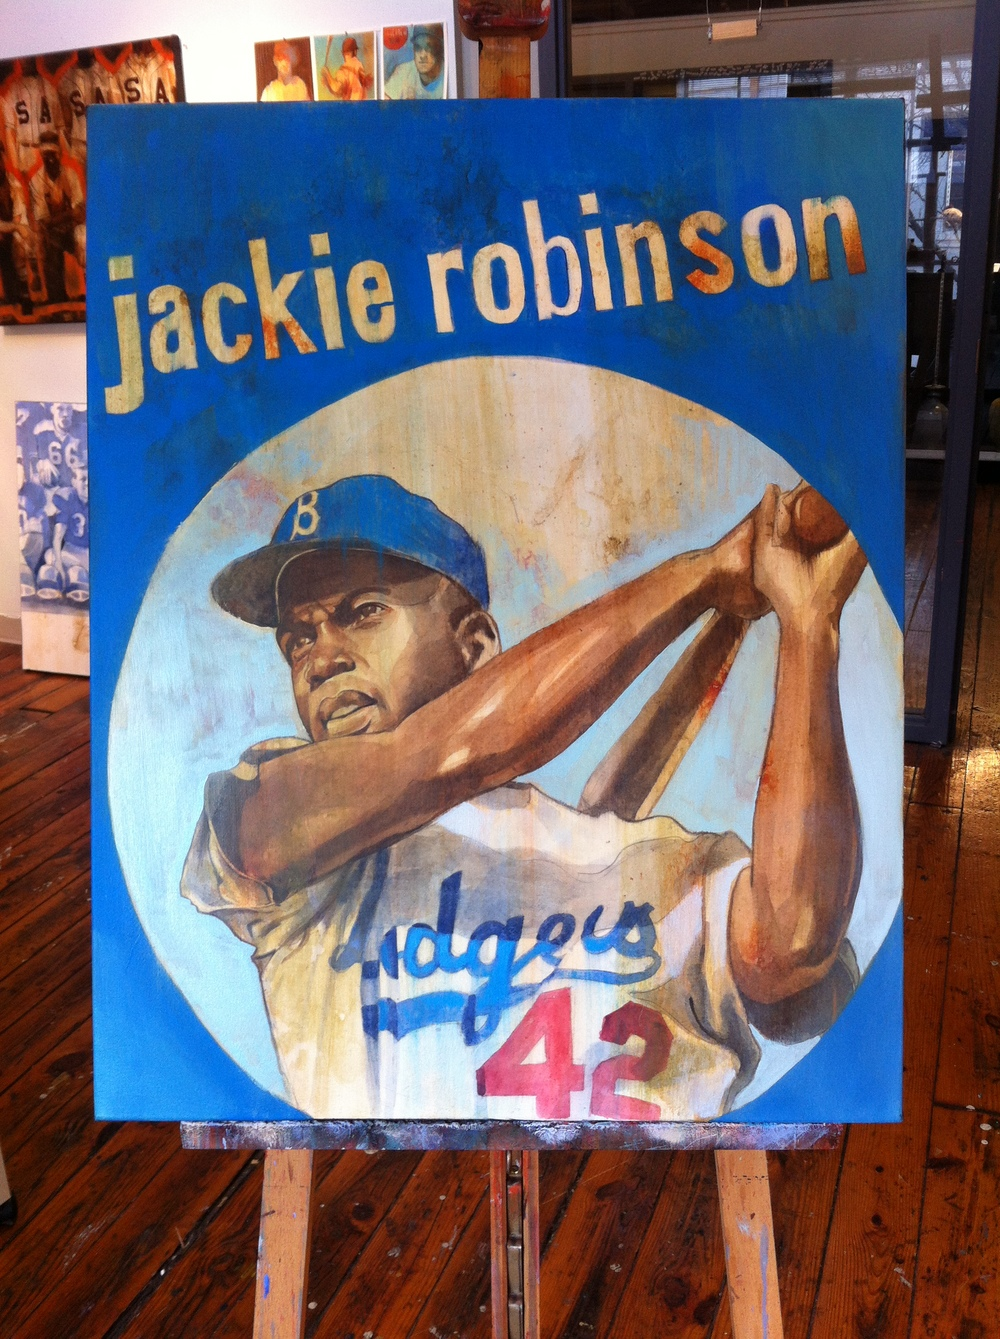 The Durham Bulls commissioned this Jackie Robinson painting for their private collection